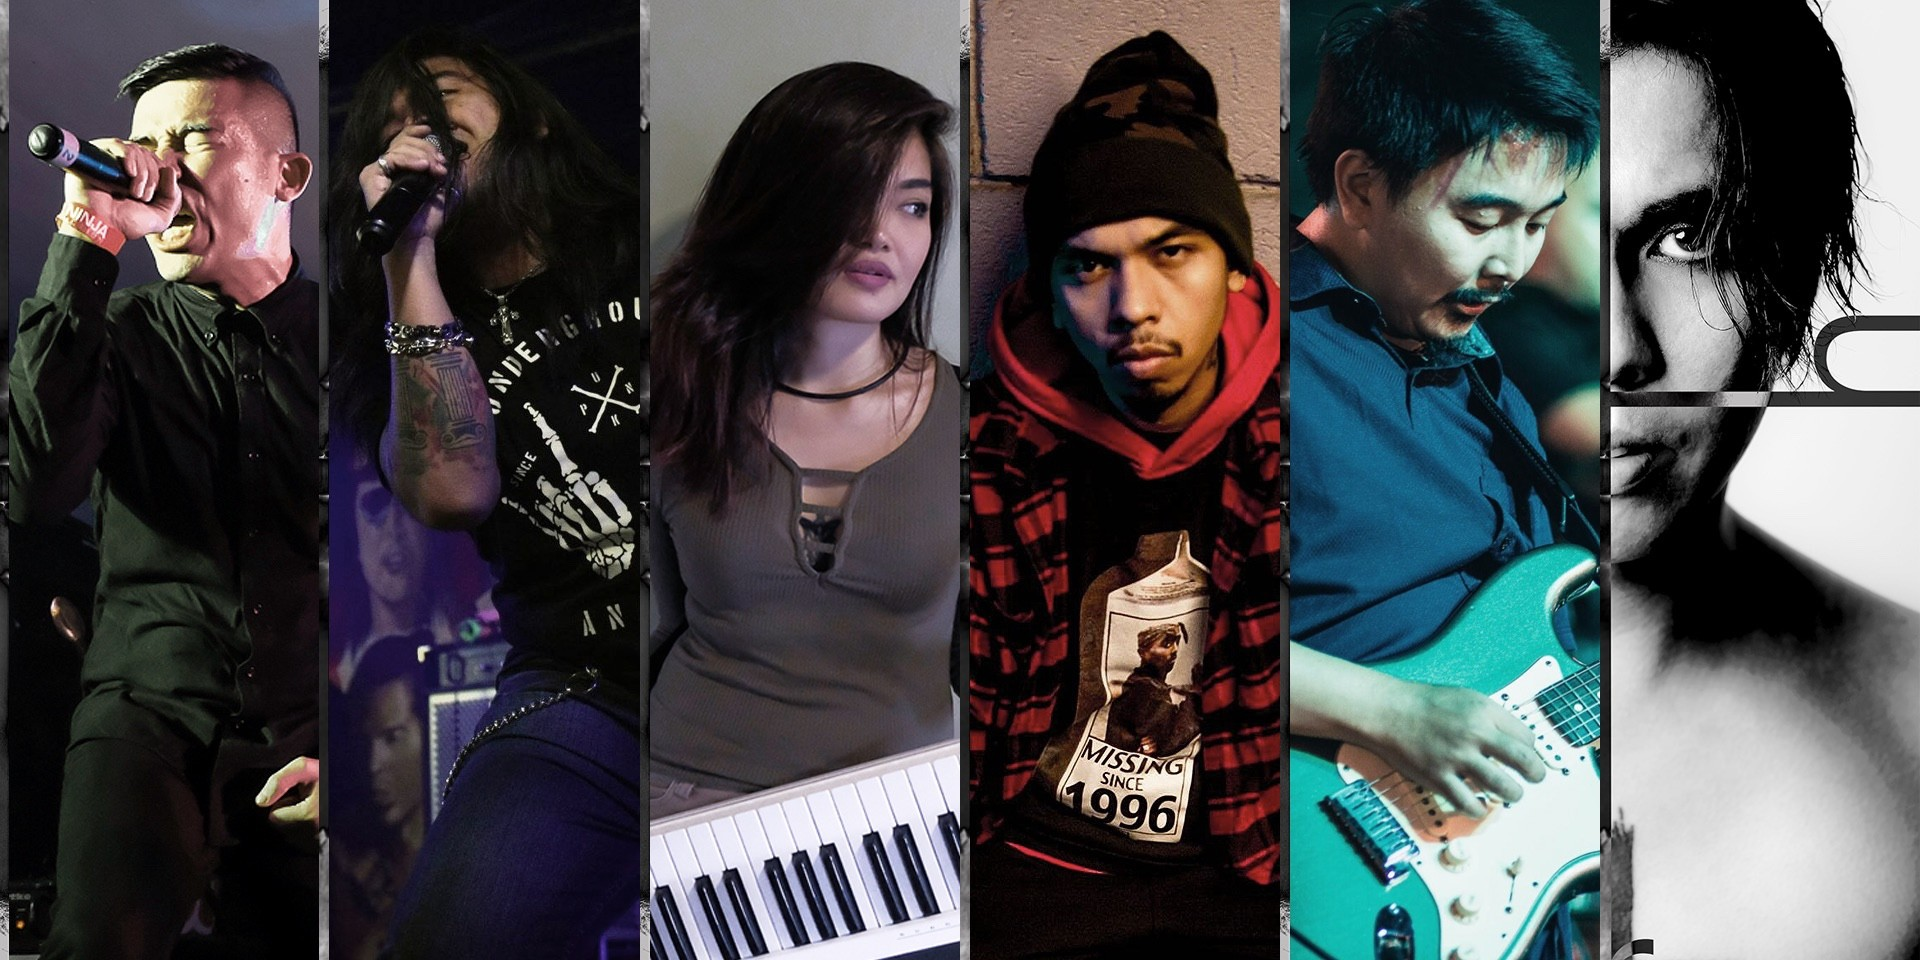 Cucay Pagdilao enlists Duran, Hale, Loonie, and more for music video launch